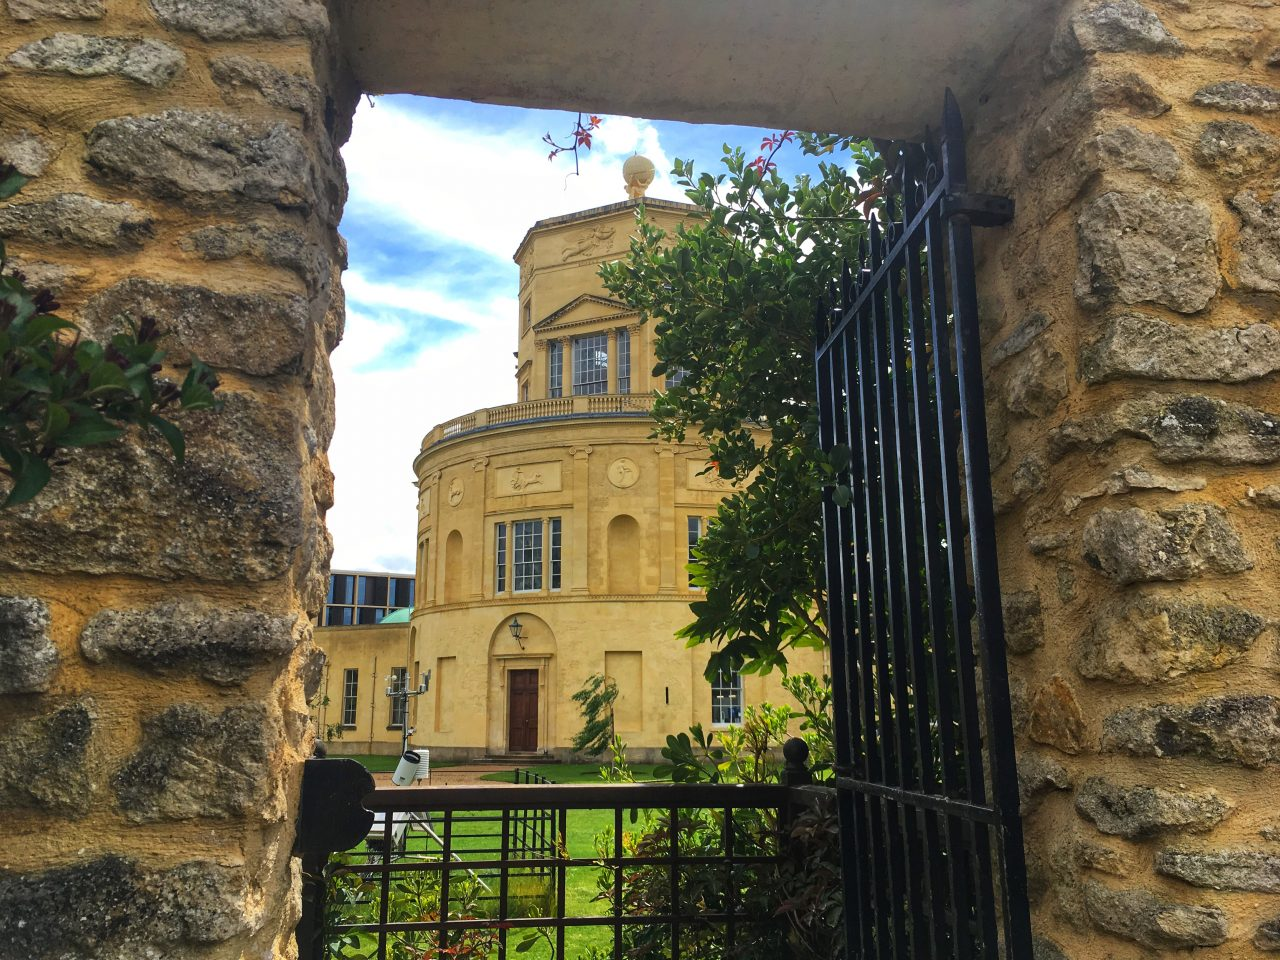 Radcliffe Observatory at Green Templeton College